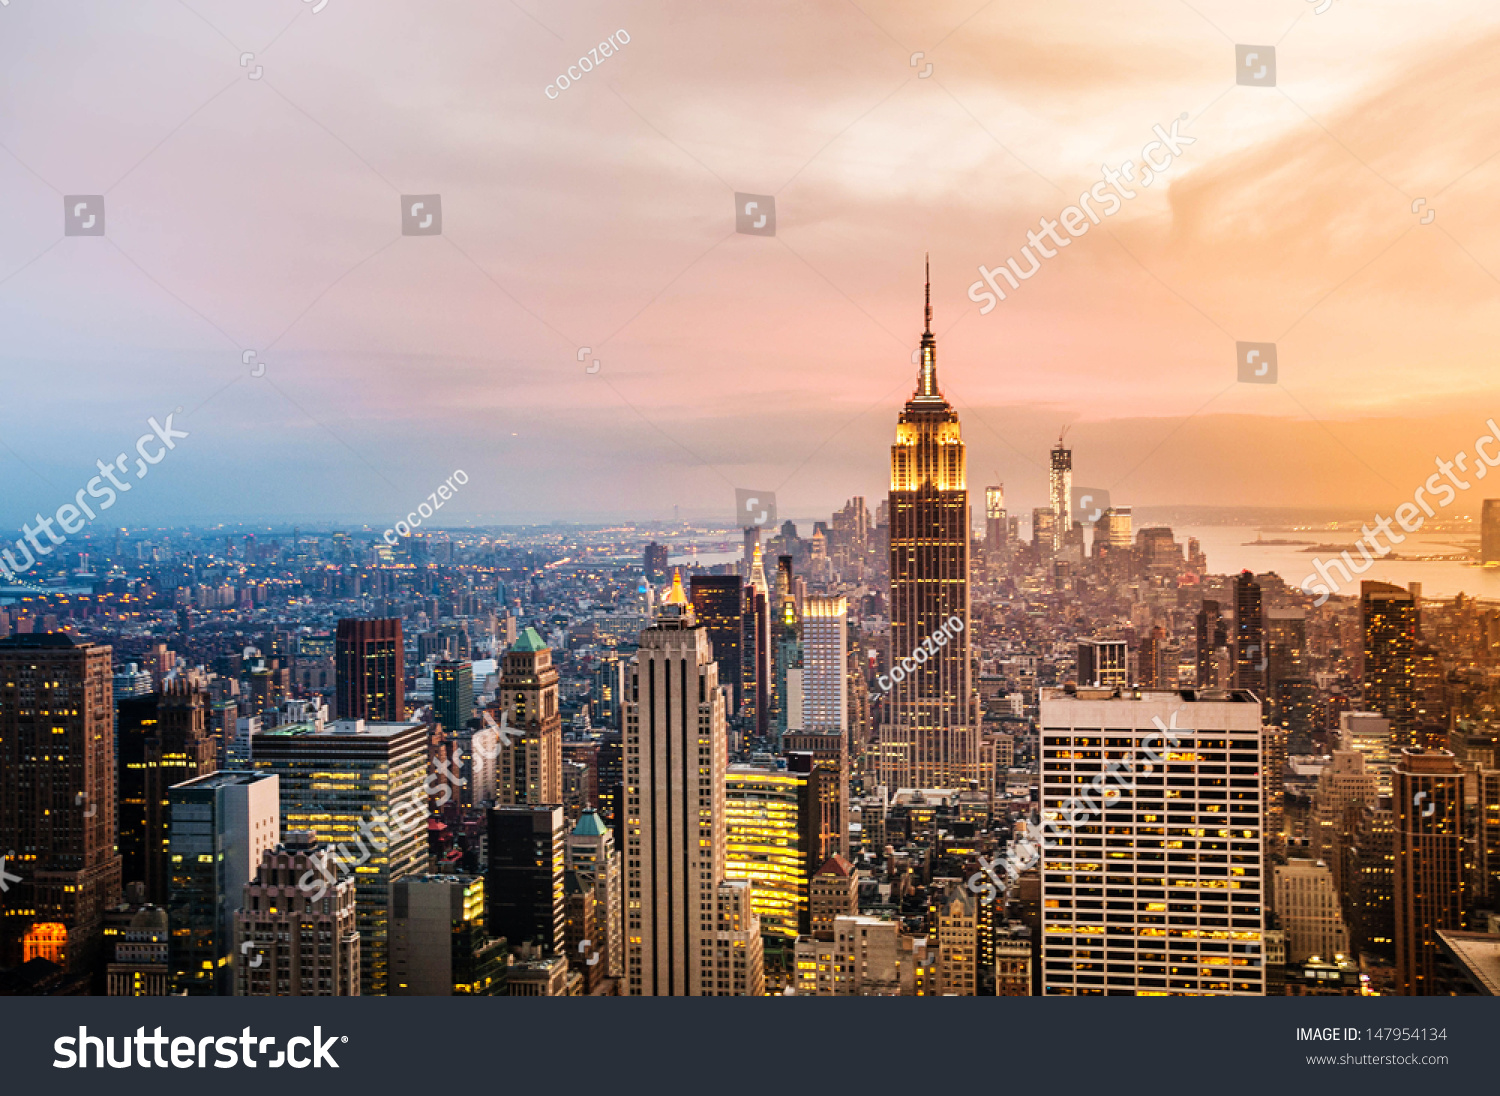 New York City skyline with urban skyscrapers at sunset.  #147954134